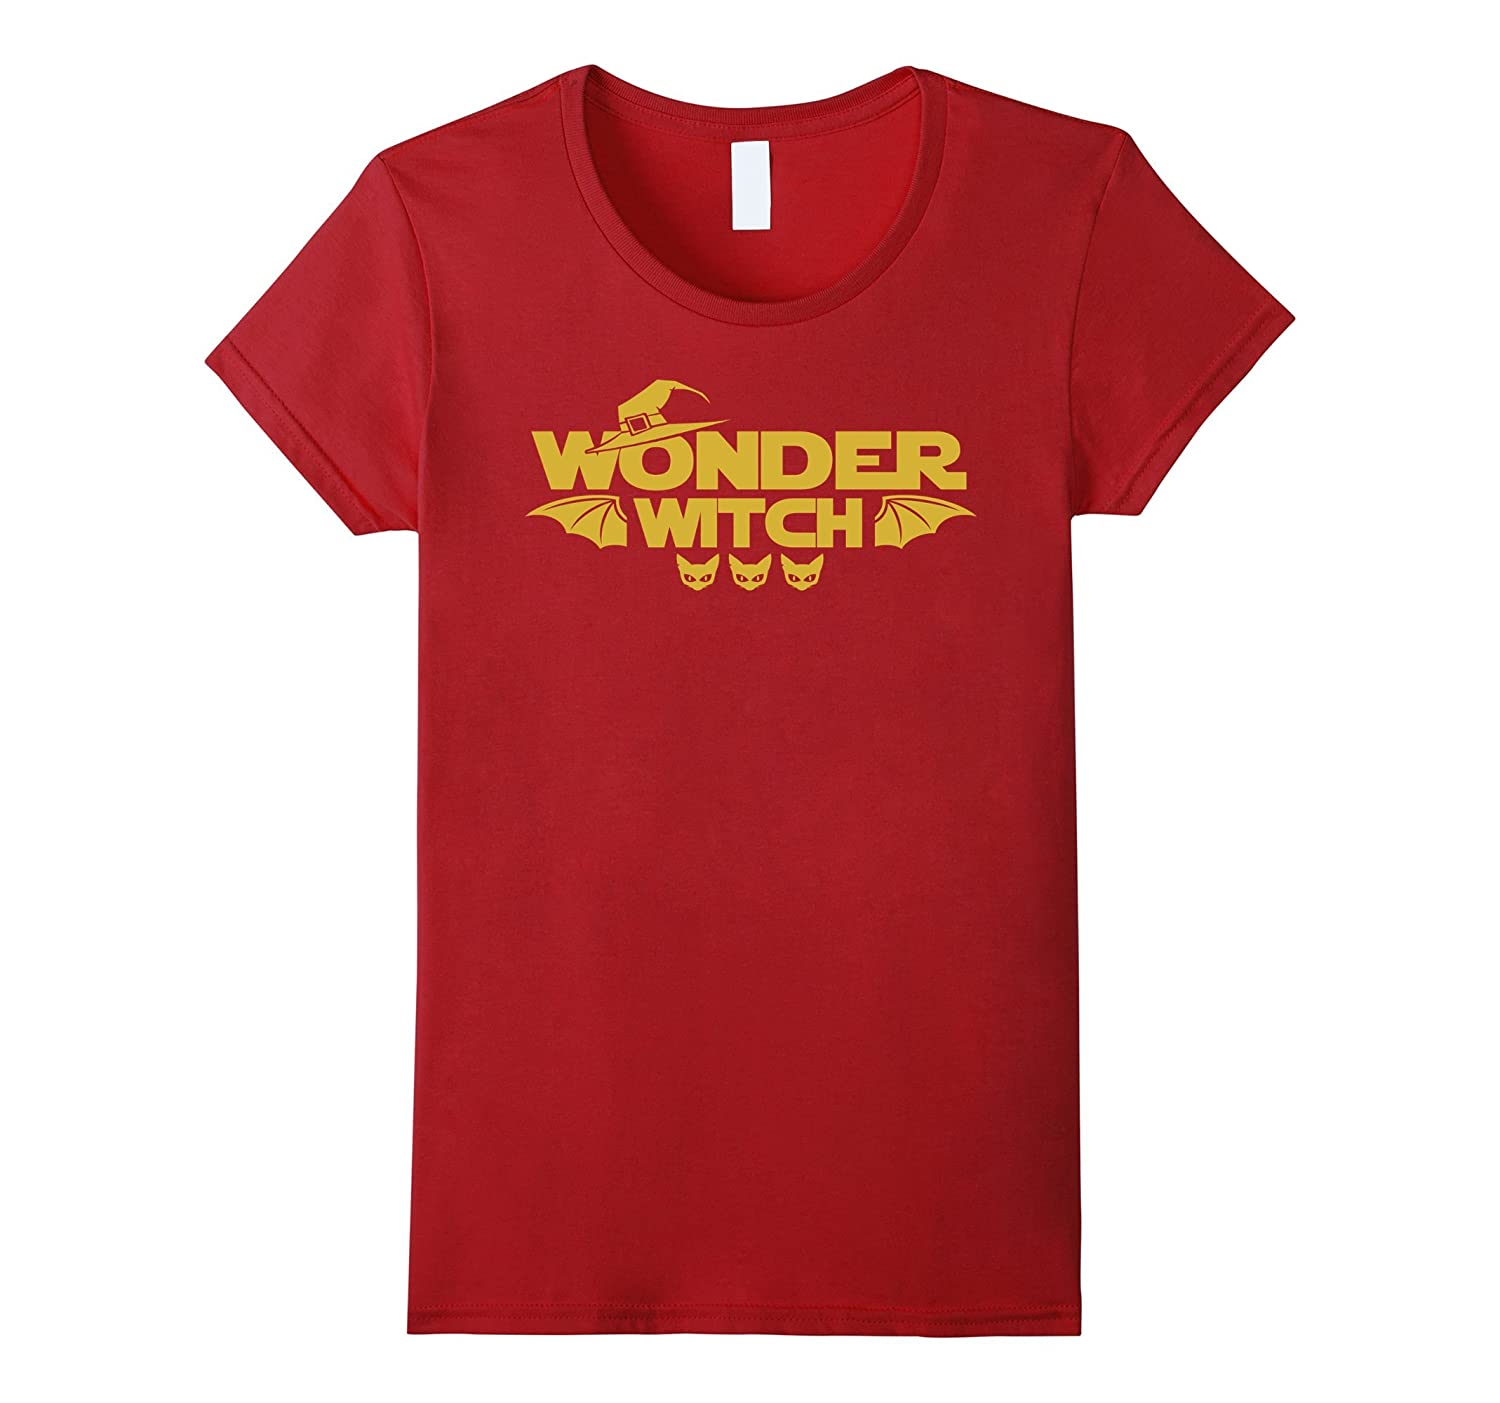 2a79faf7b Scary Wonder Witch Halloween T Shirt Gift-ANZ ⋆ Anztshirt